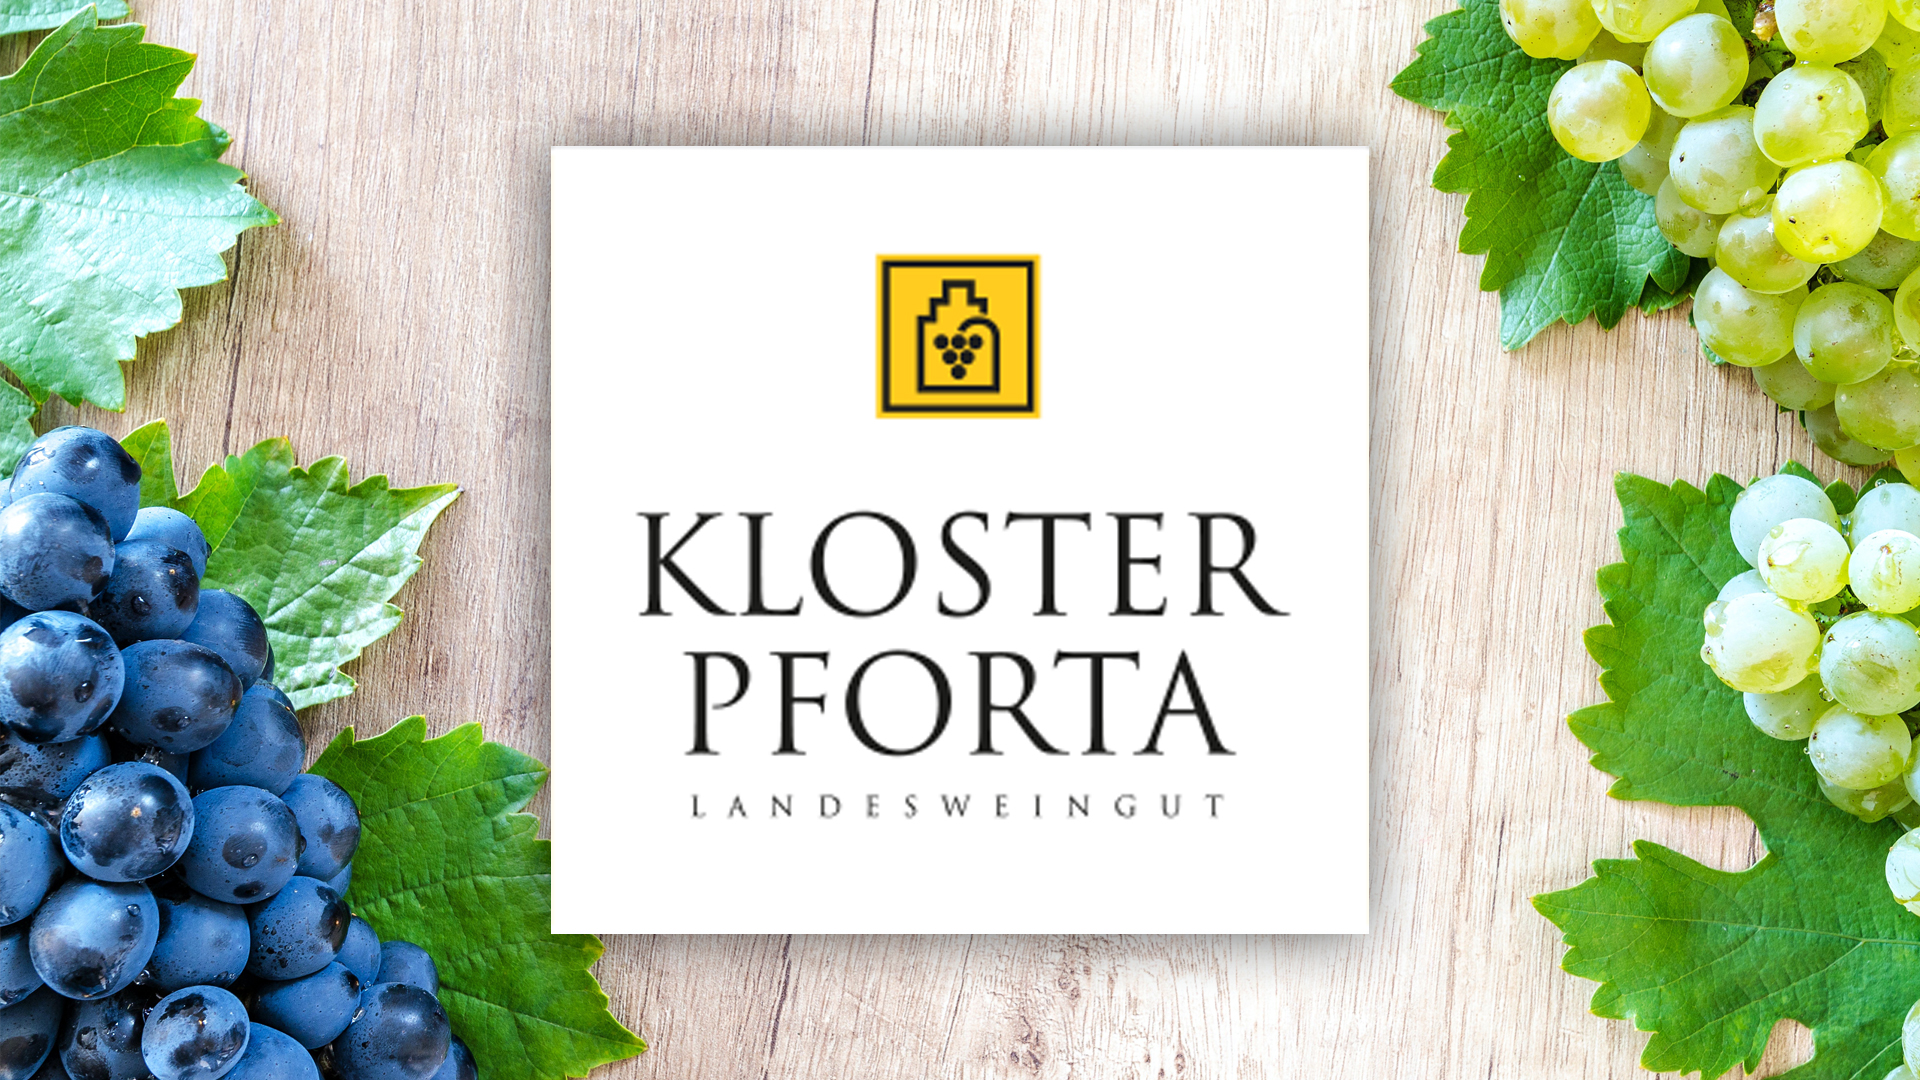 The state winery Kloster Pforta